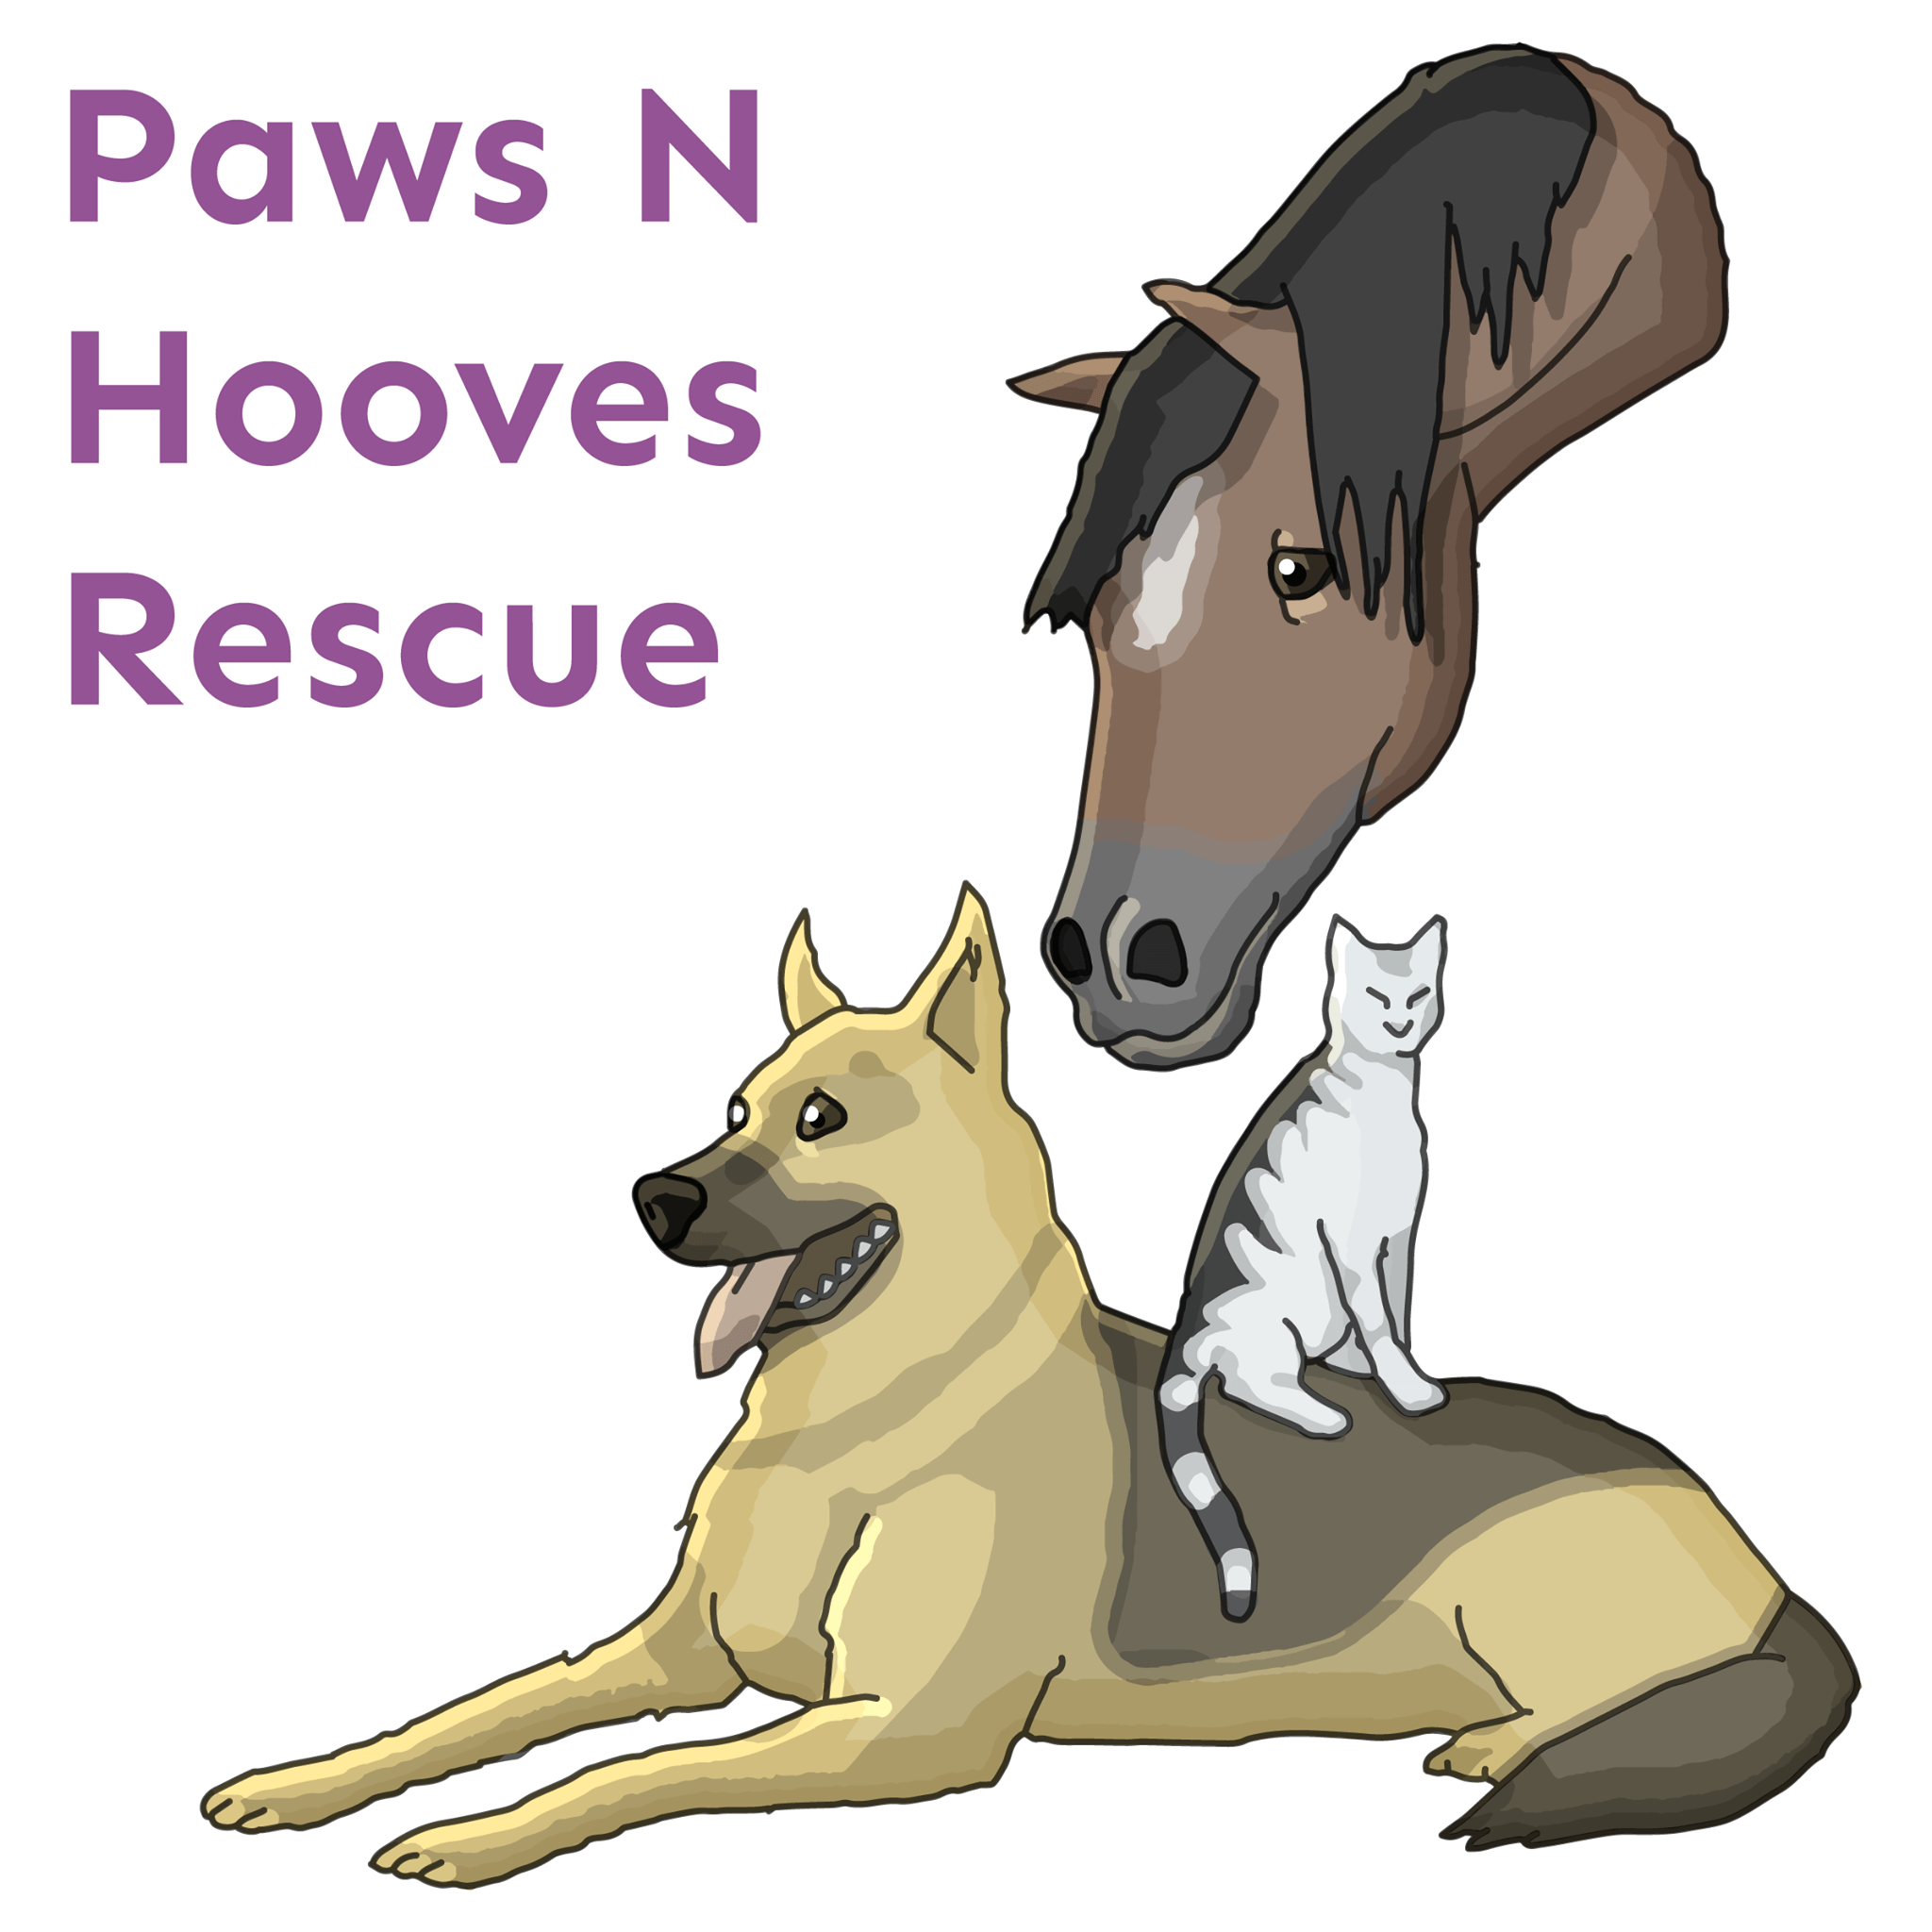 paw N hooves rescue logo